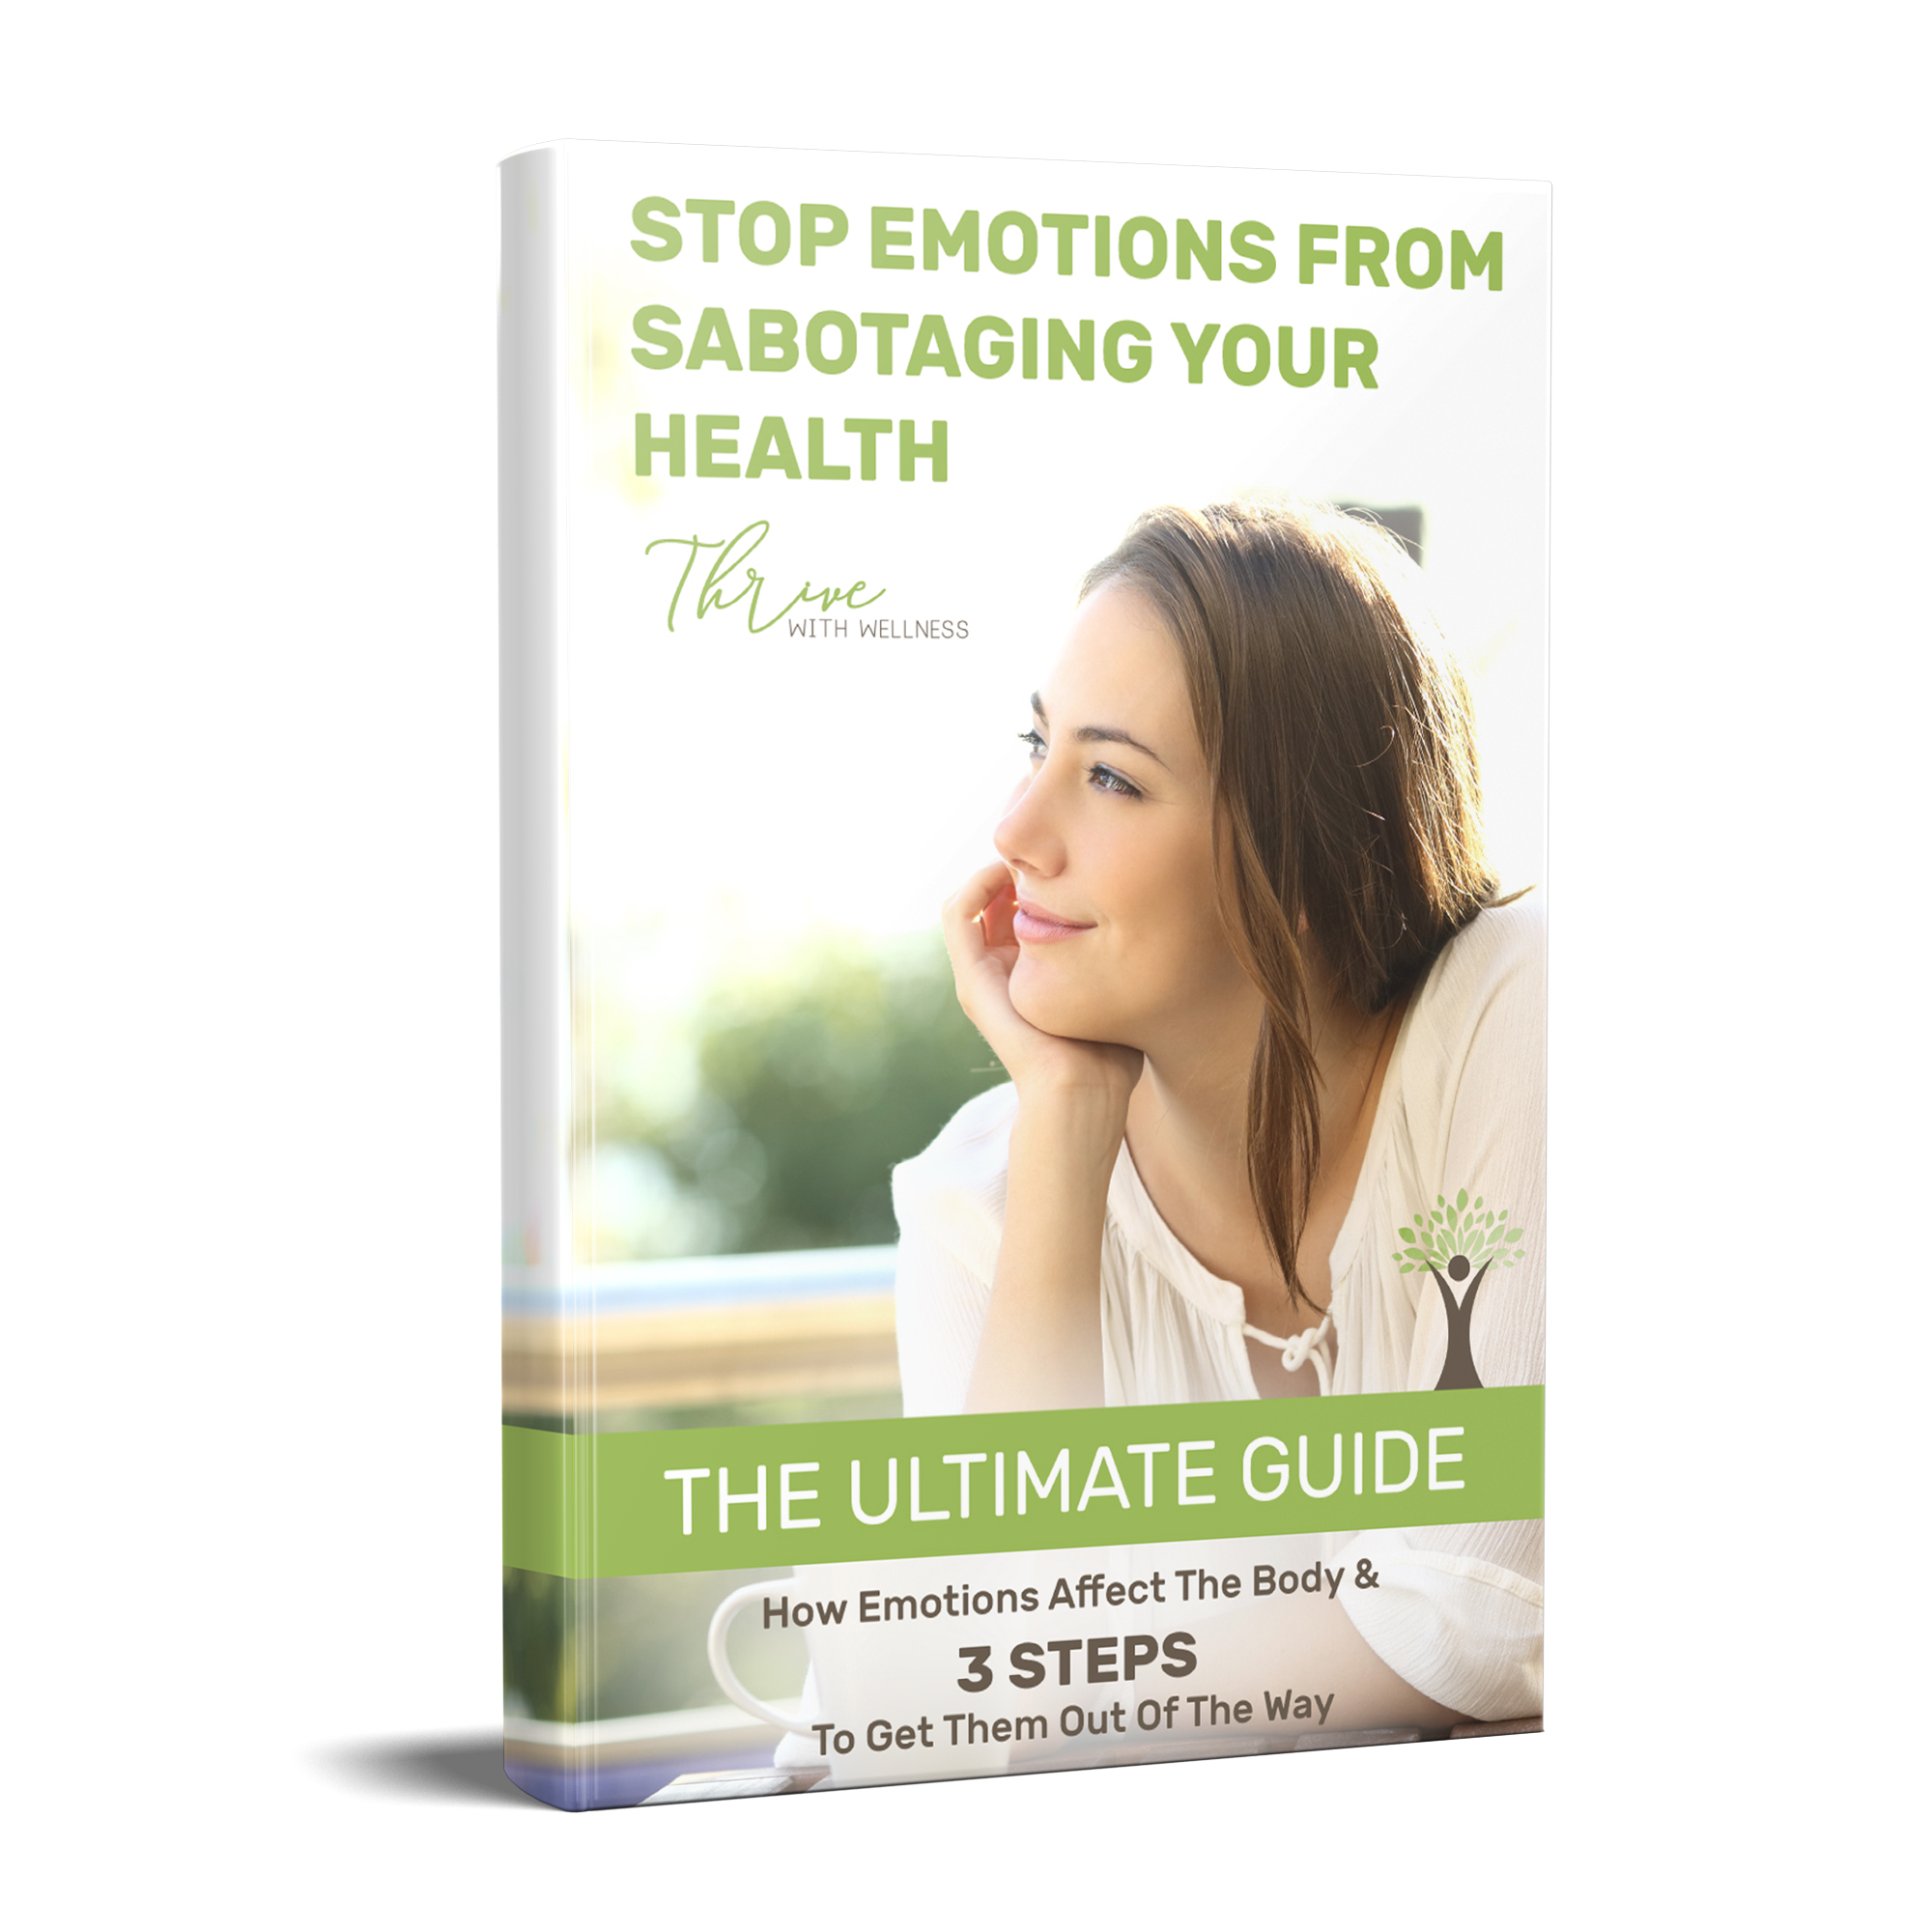 thrive-with-wellness-e-book-stop-emotions-from-sabotaging